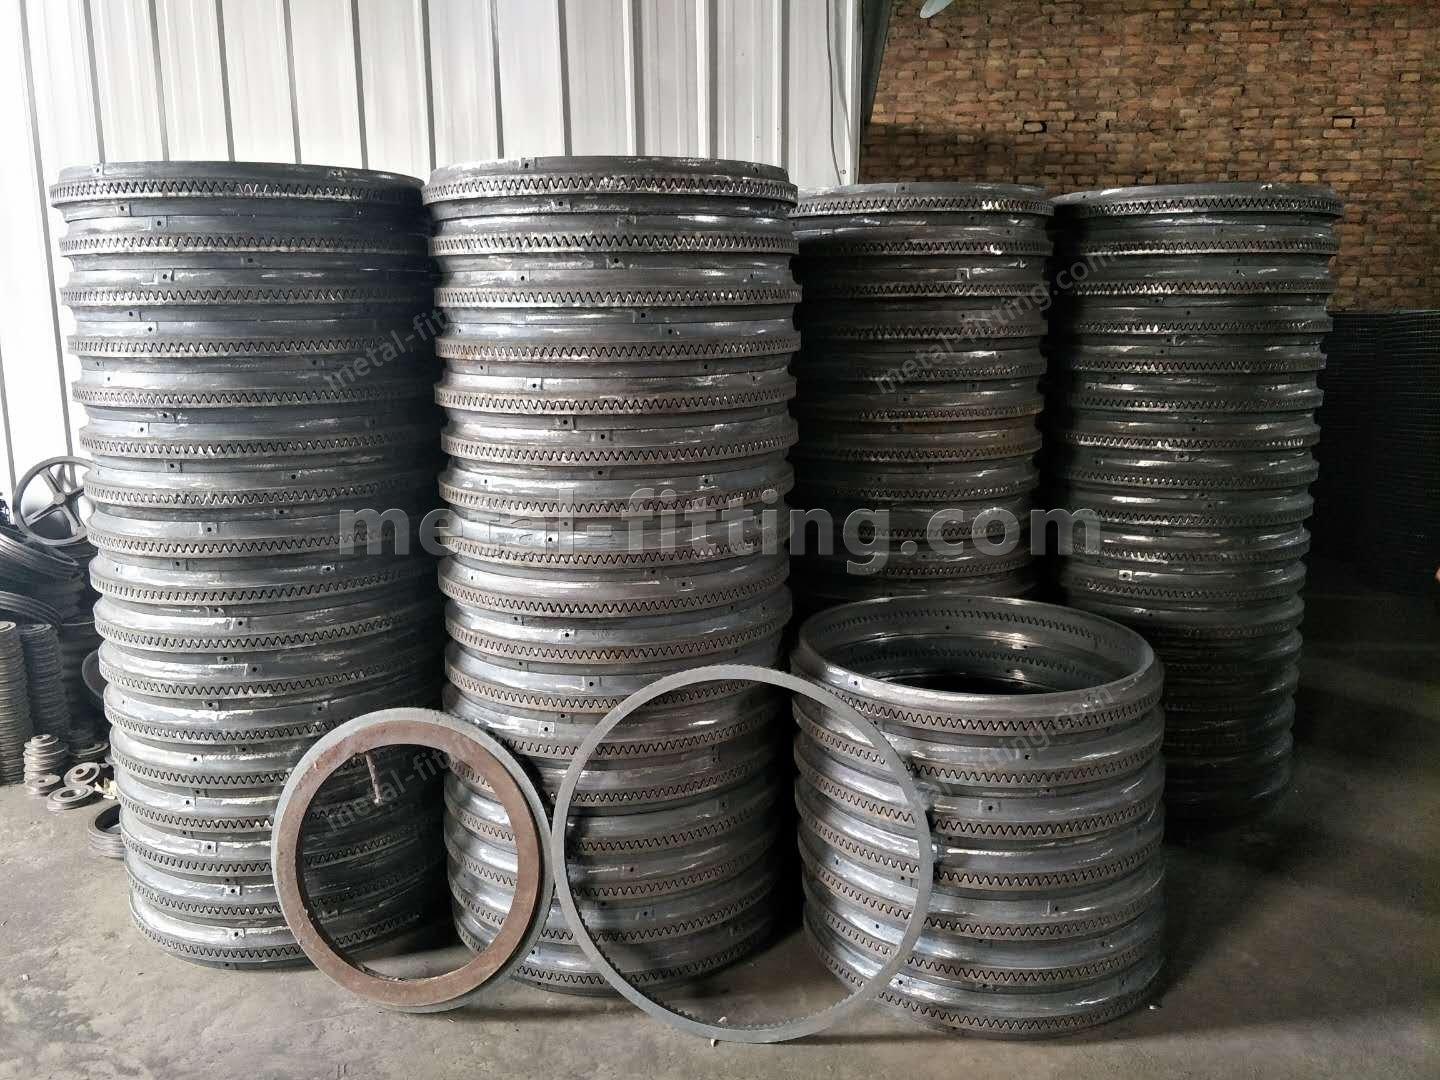 Casted iron Ring Gear and Pulley for concret Mixer-400264970700798907